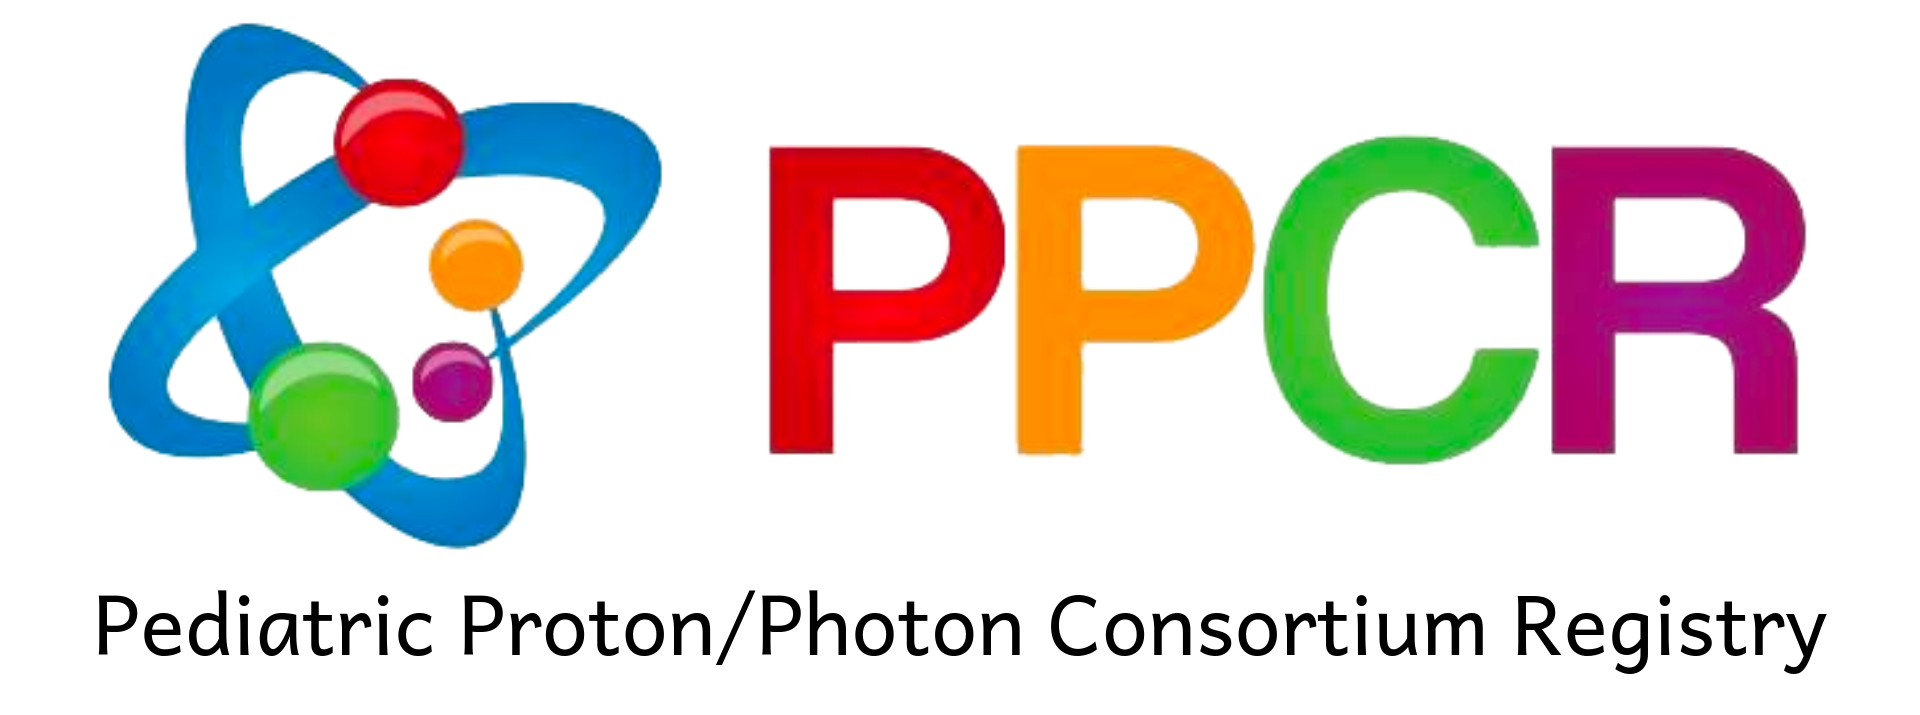 PPCR Pediatric Proton Consortium Registry